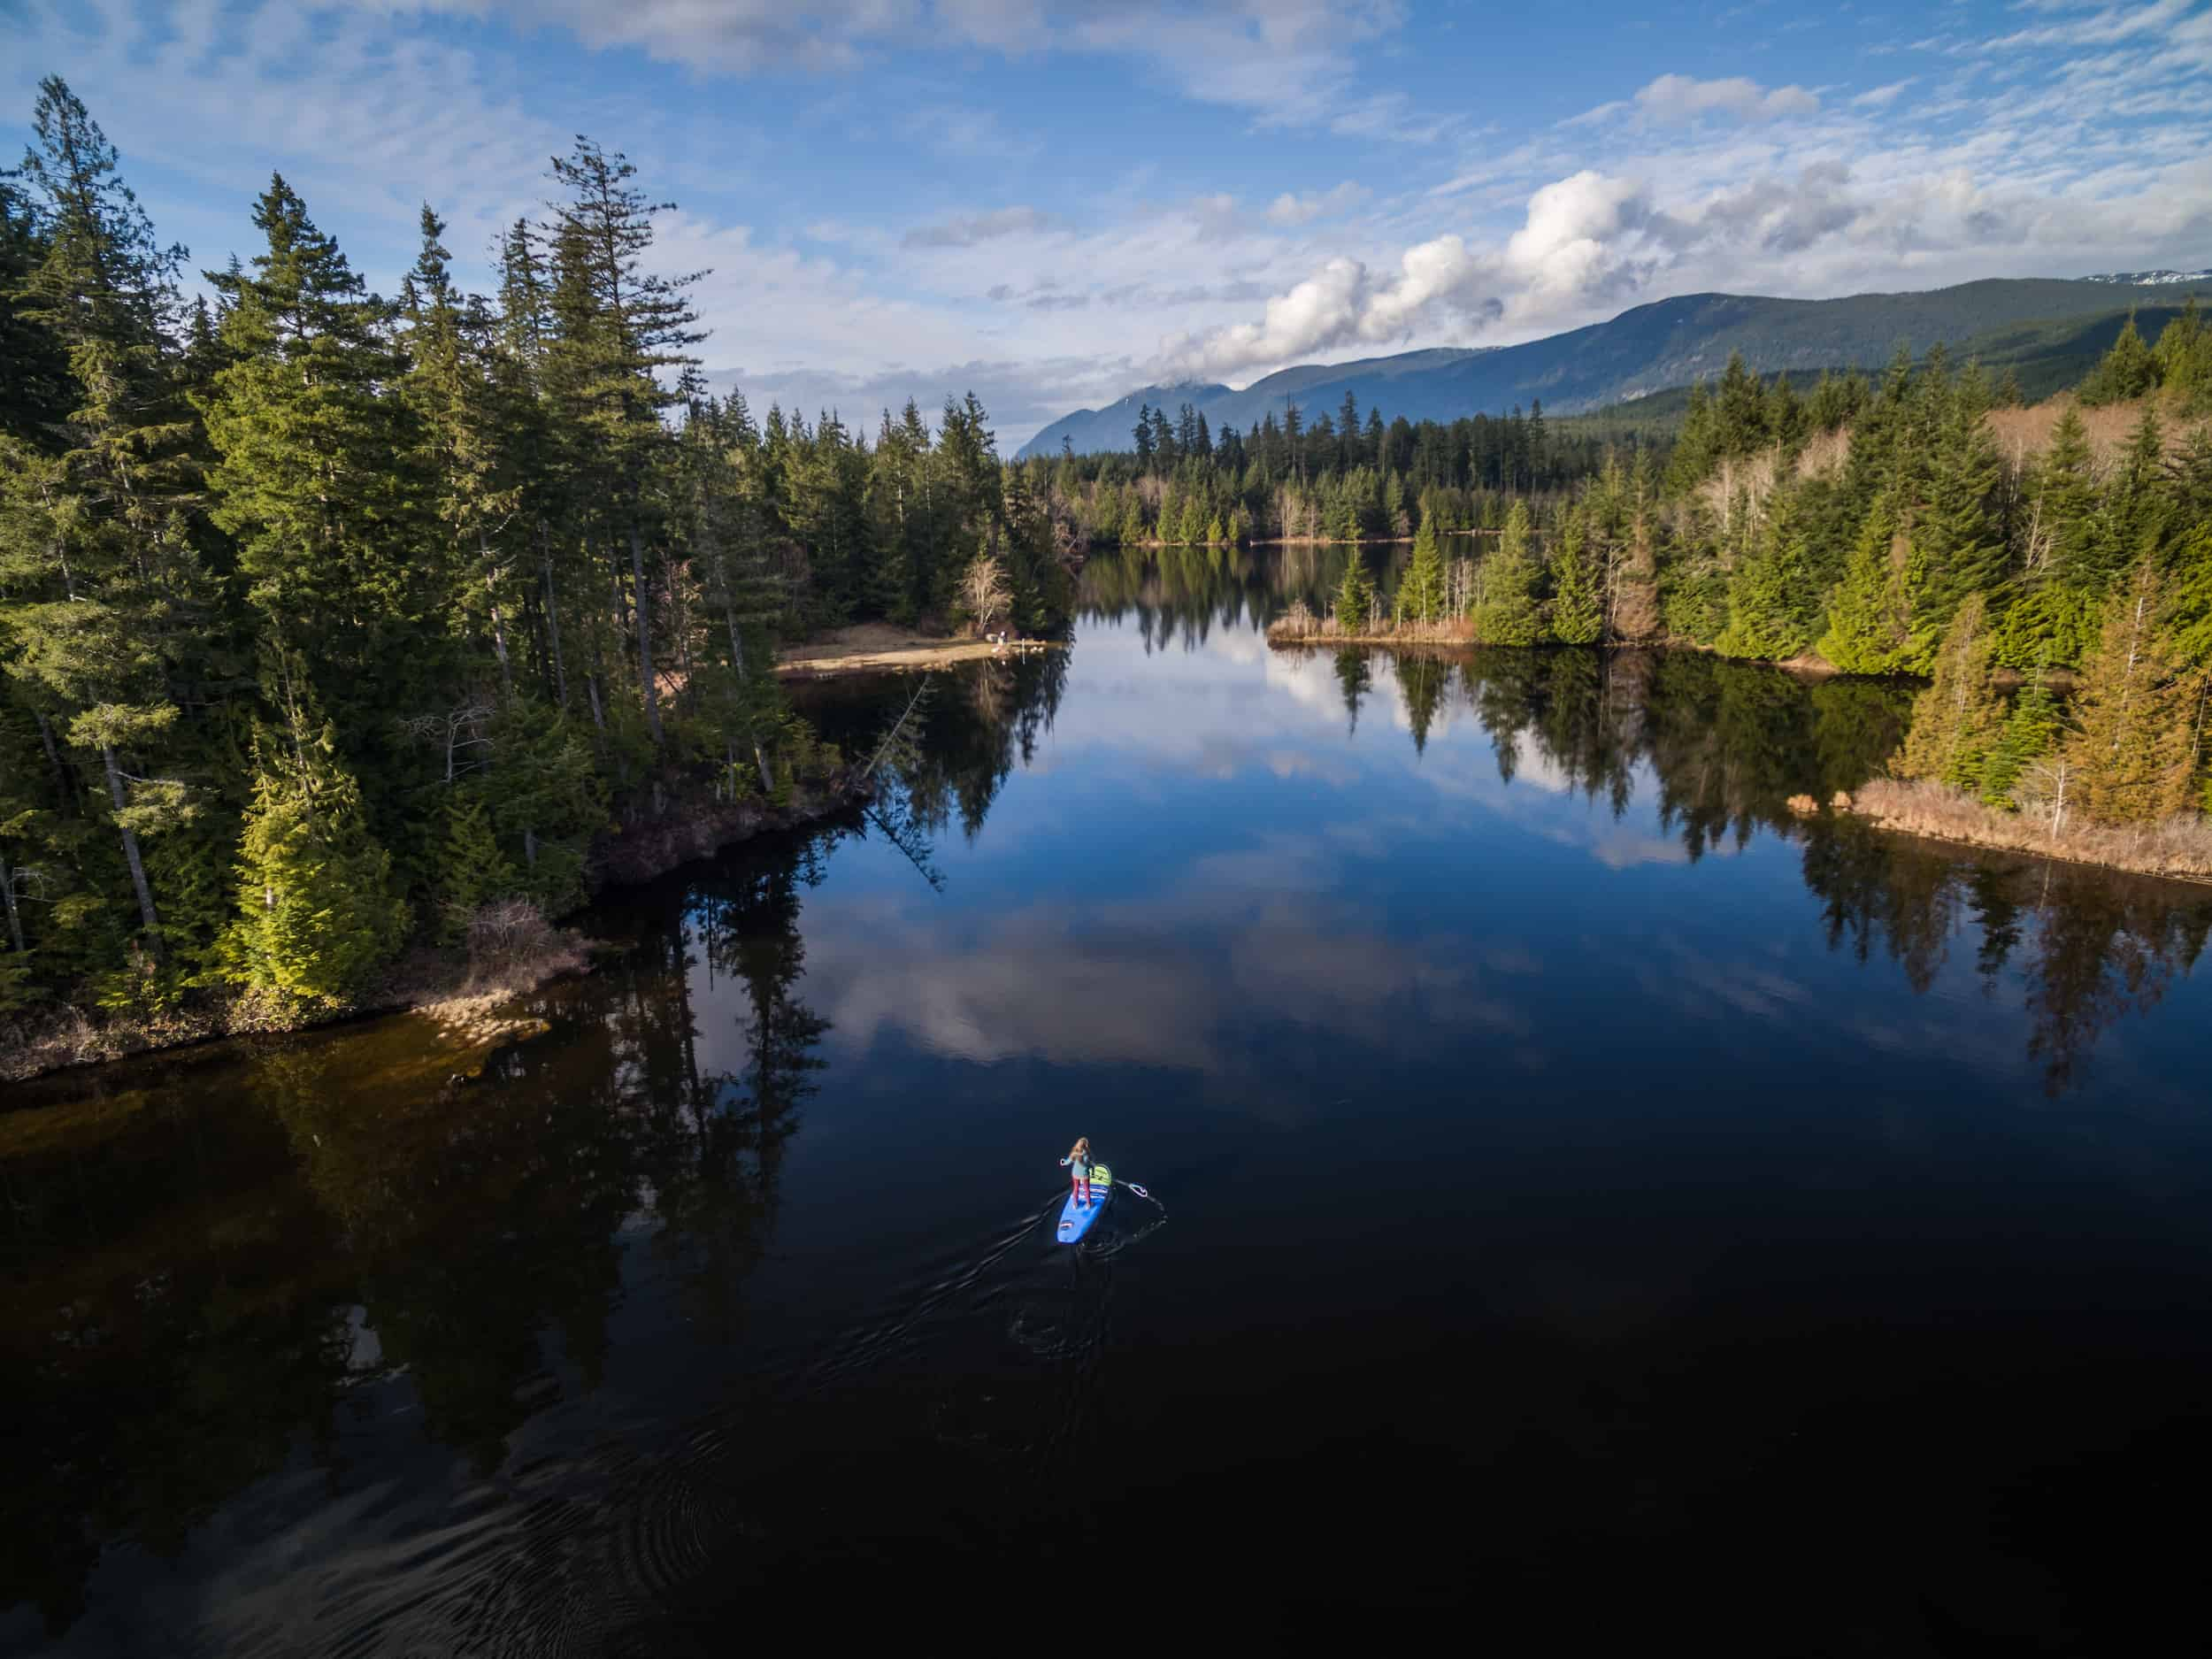 Win One of FOUR Amazing Adventure Prize Packages on BC's